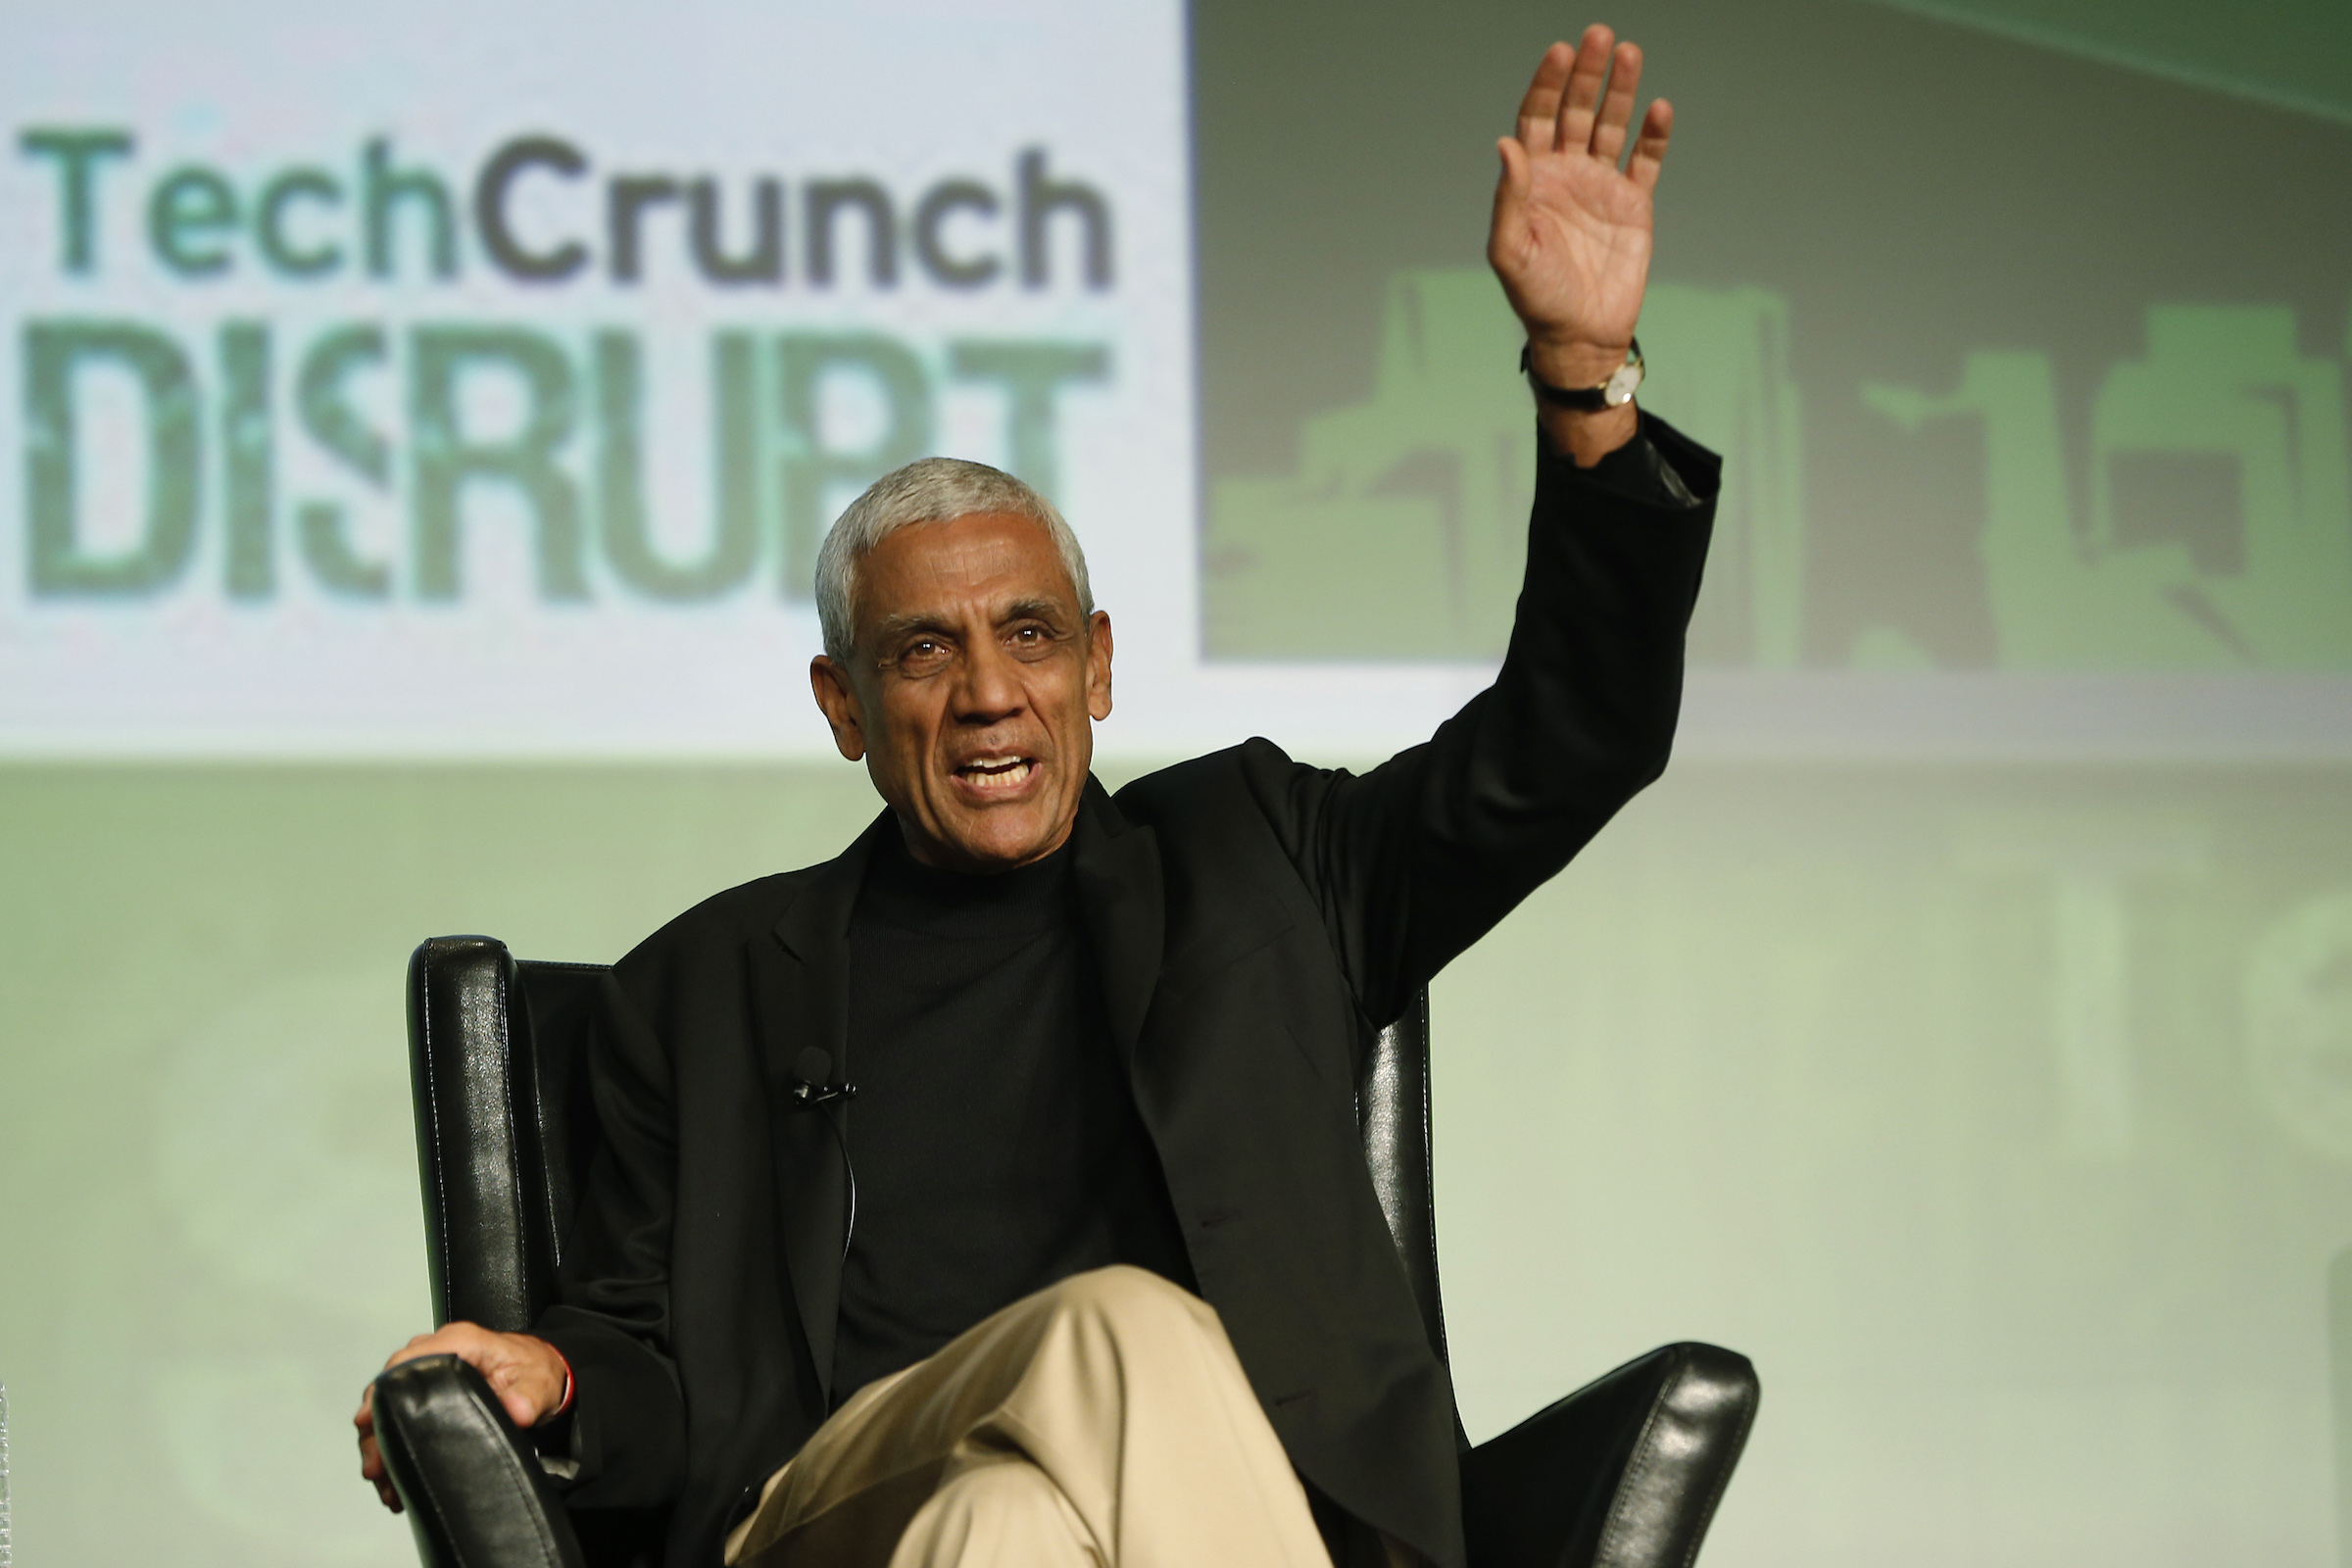 Khosla Ventures founder Vinod Khosla speaks on stage during TechCrunch Disrupt SF 2012 at the San Francisco Design Center Concourse in San Francisco, California September 12, 2012.